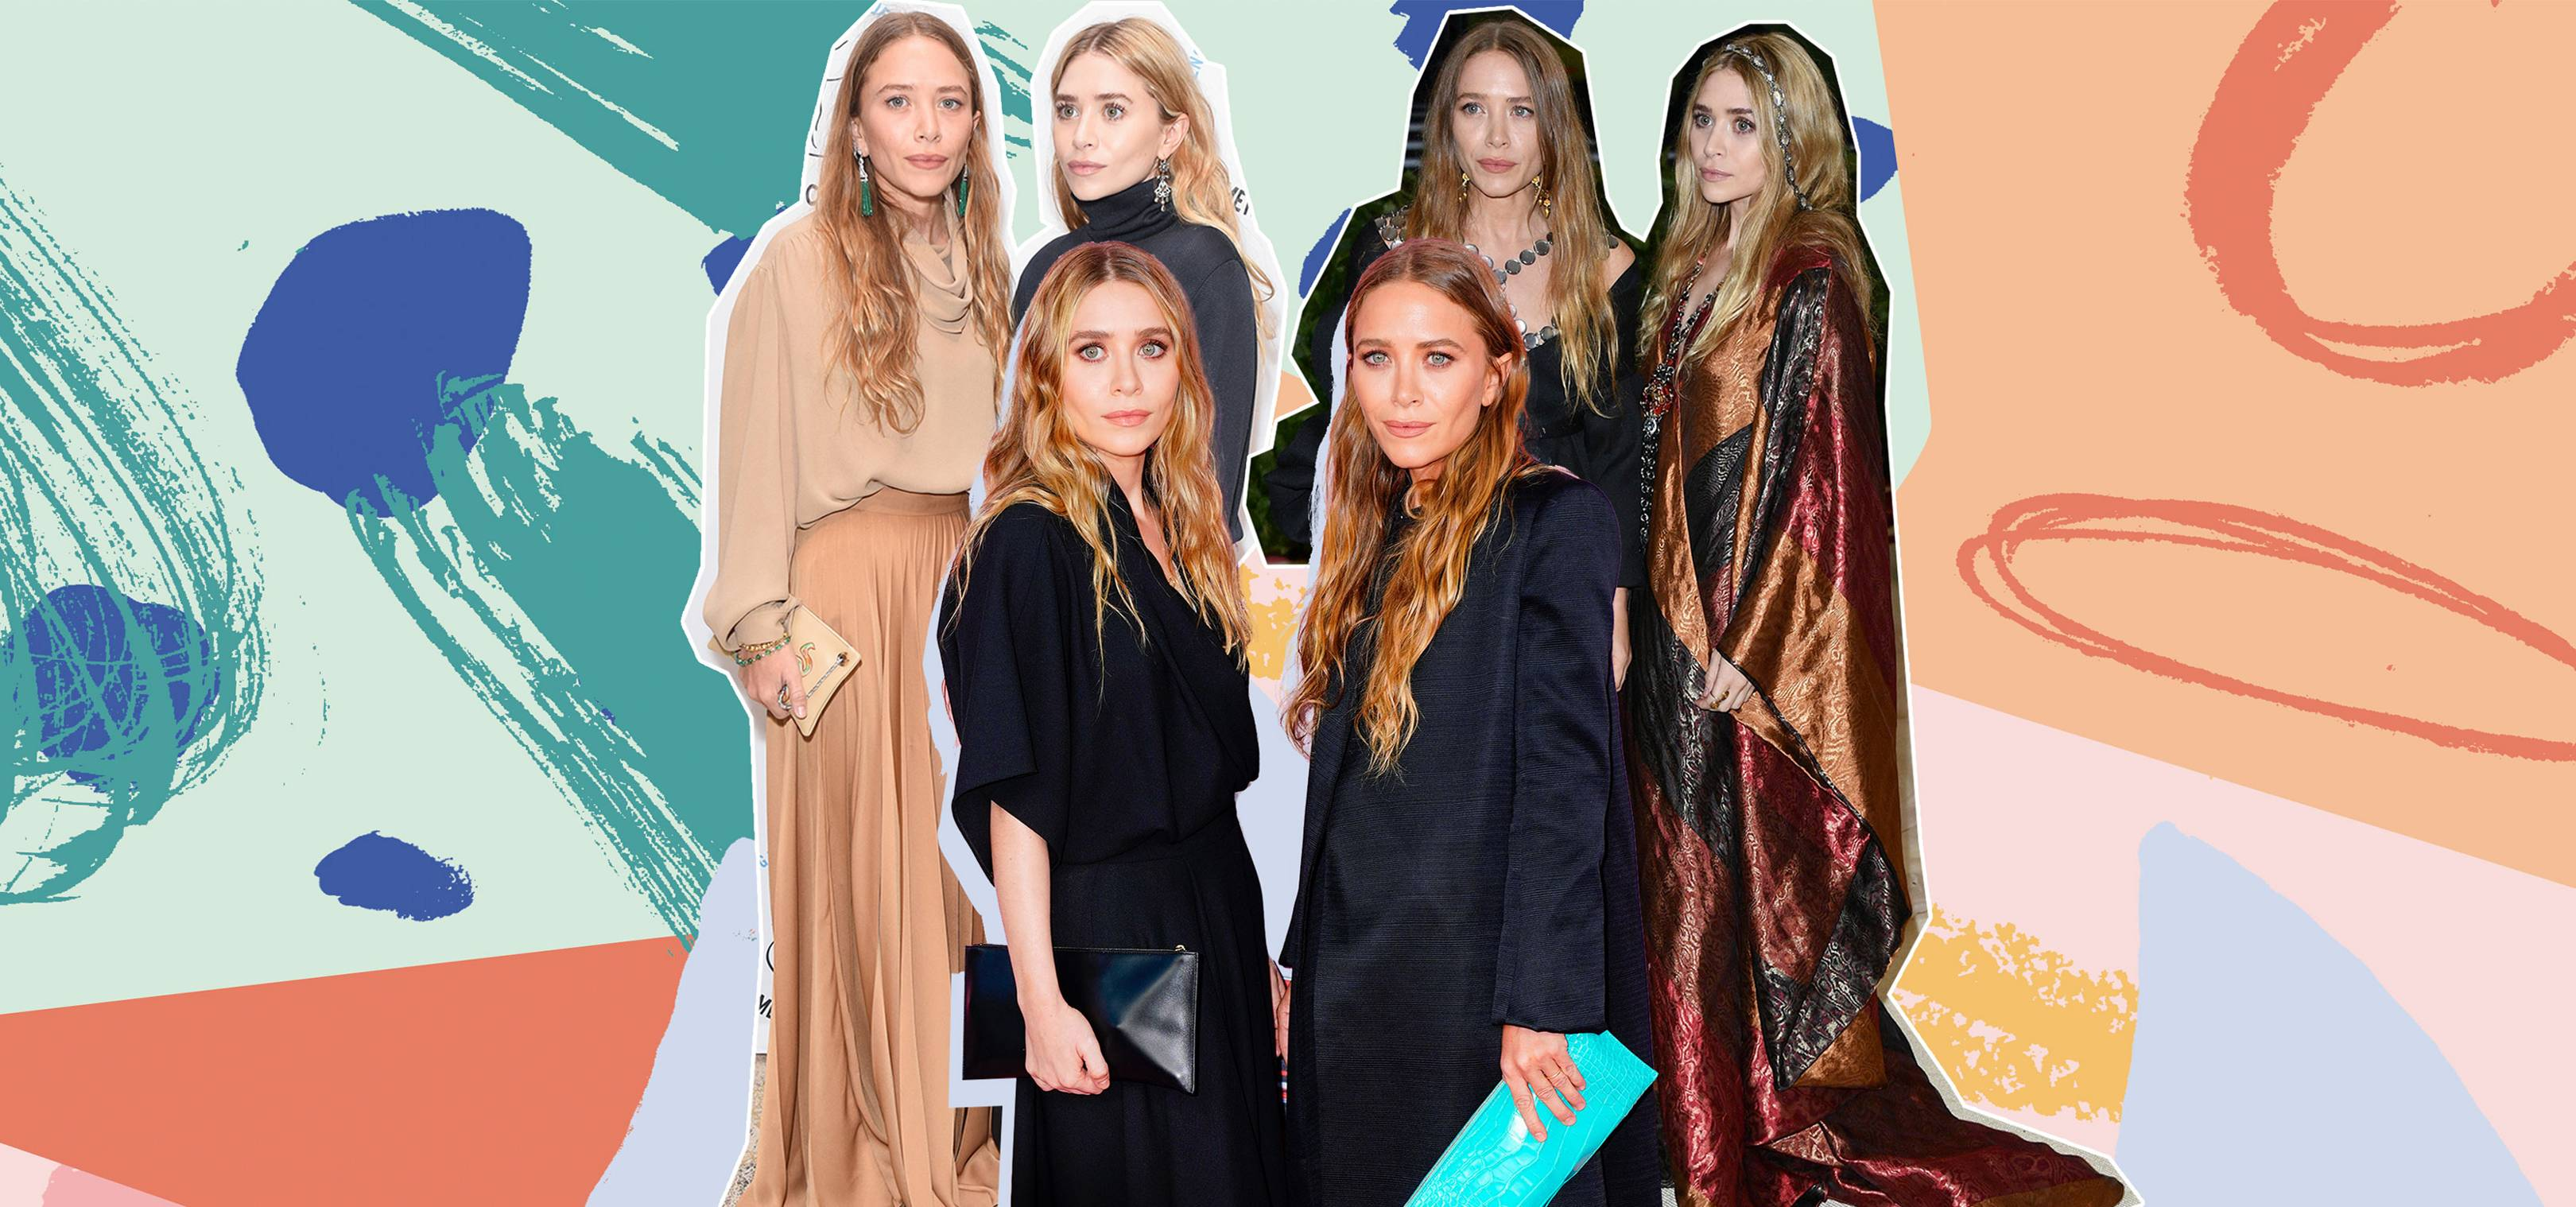 As Mary-Kate and Ashley hit Netflix(!), we take a trip down memory lane with the coolest style sisters